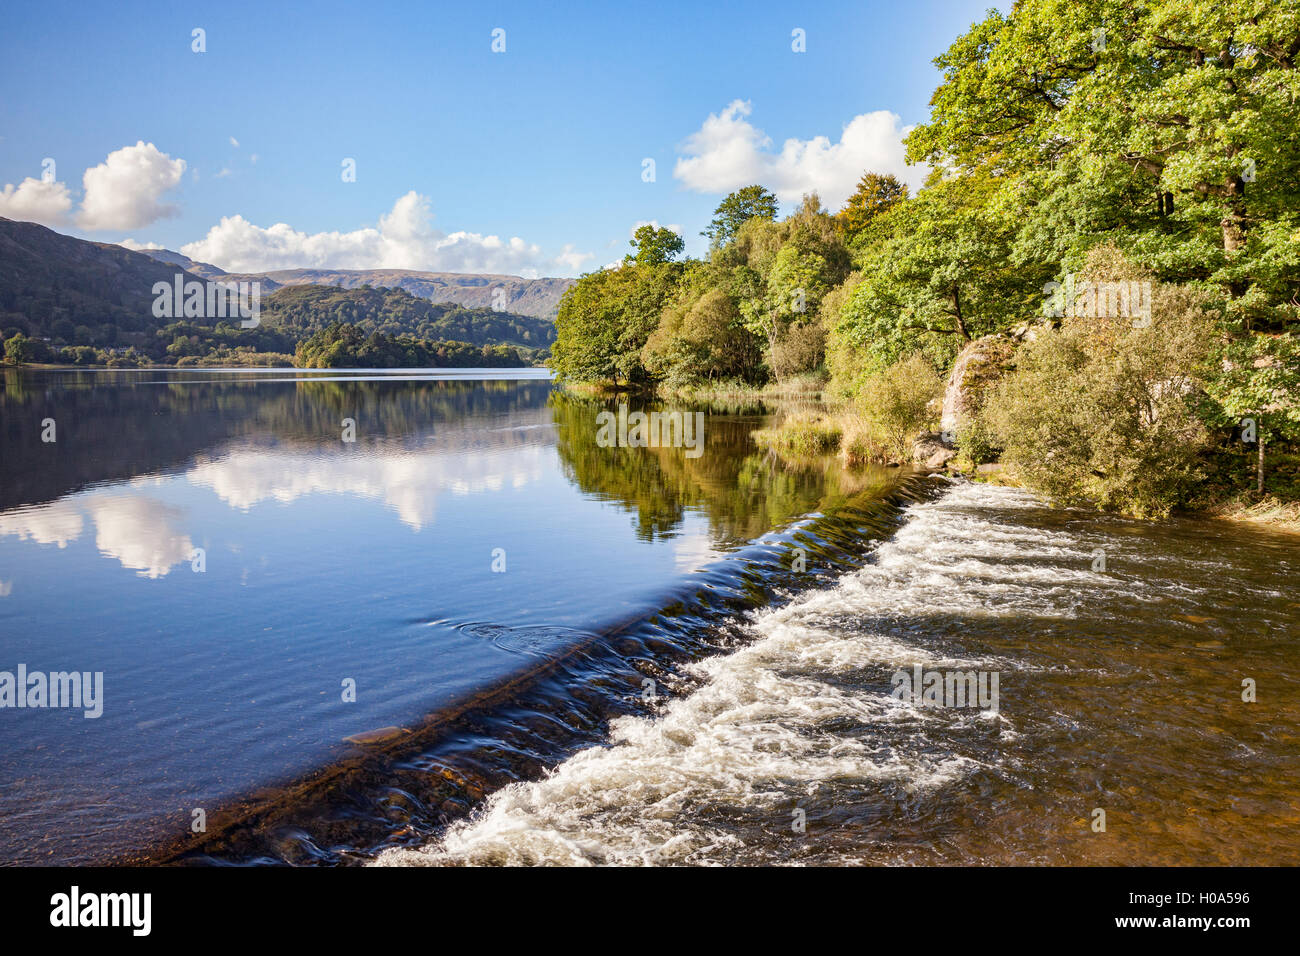 Weir at Grasmere, Lake District National Park, Cumbria, England, UK - Stock Image